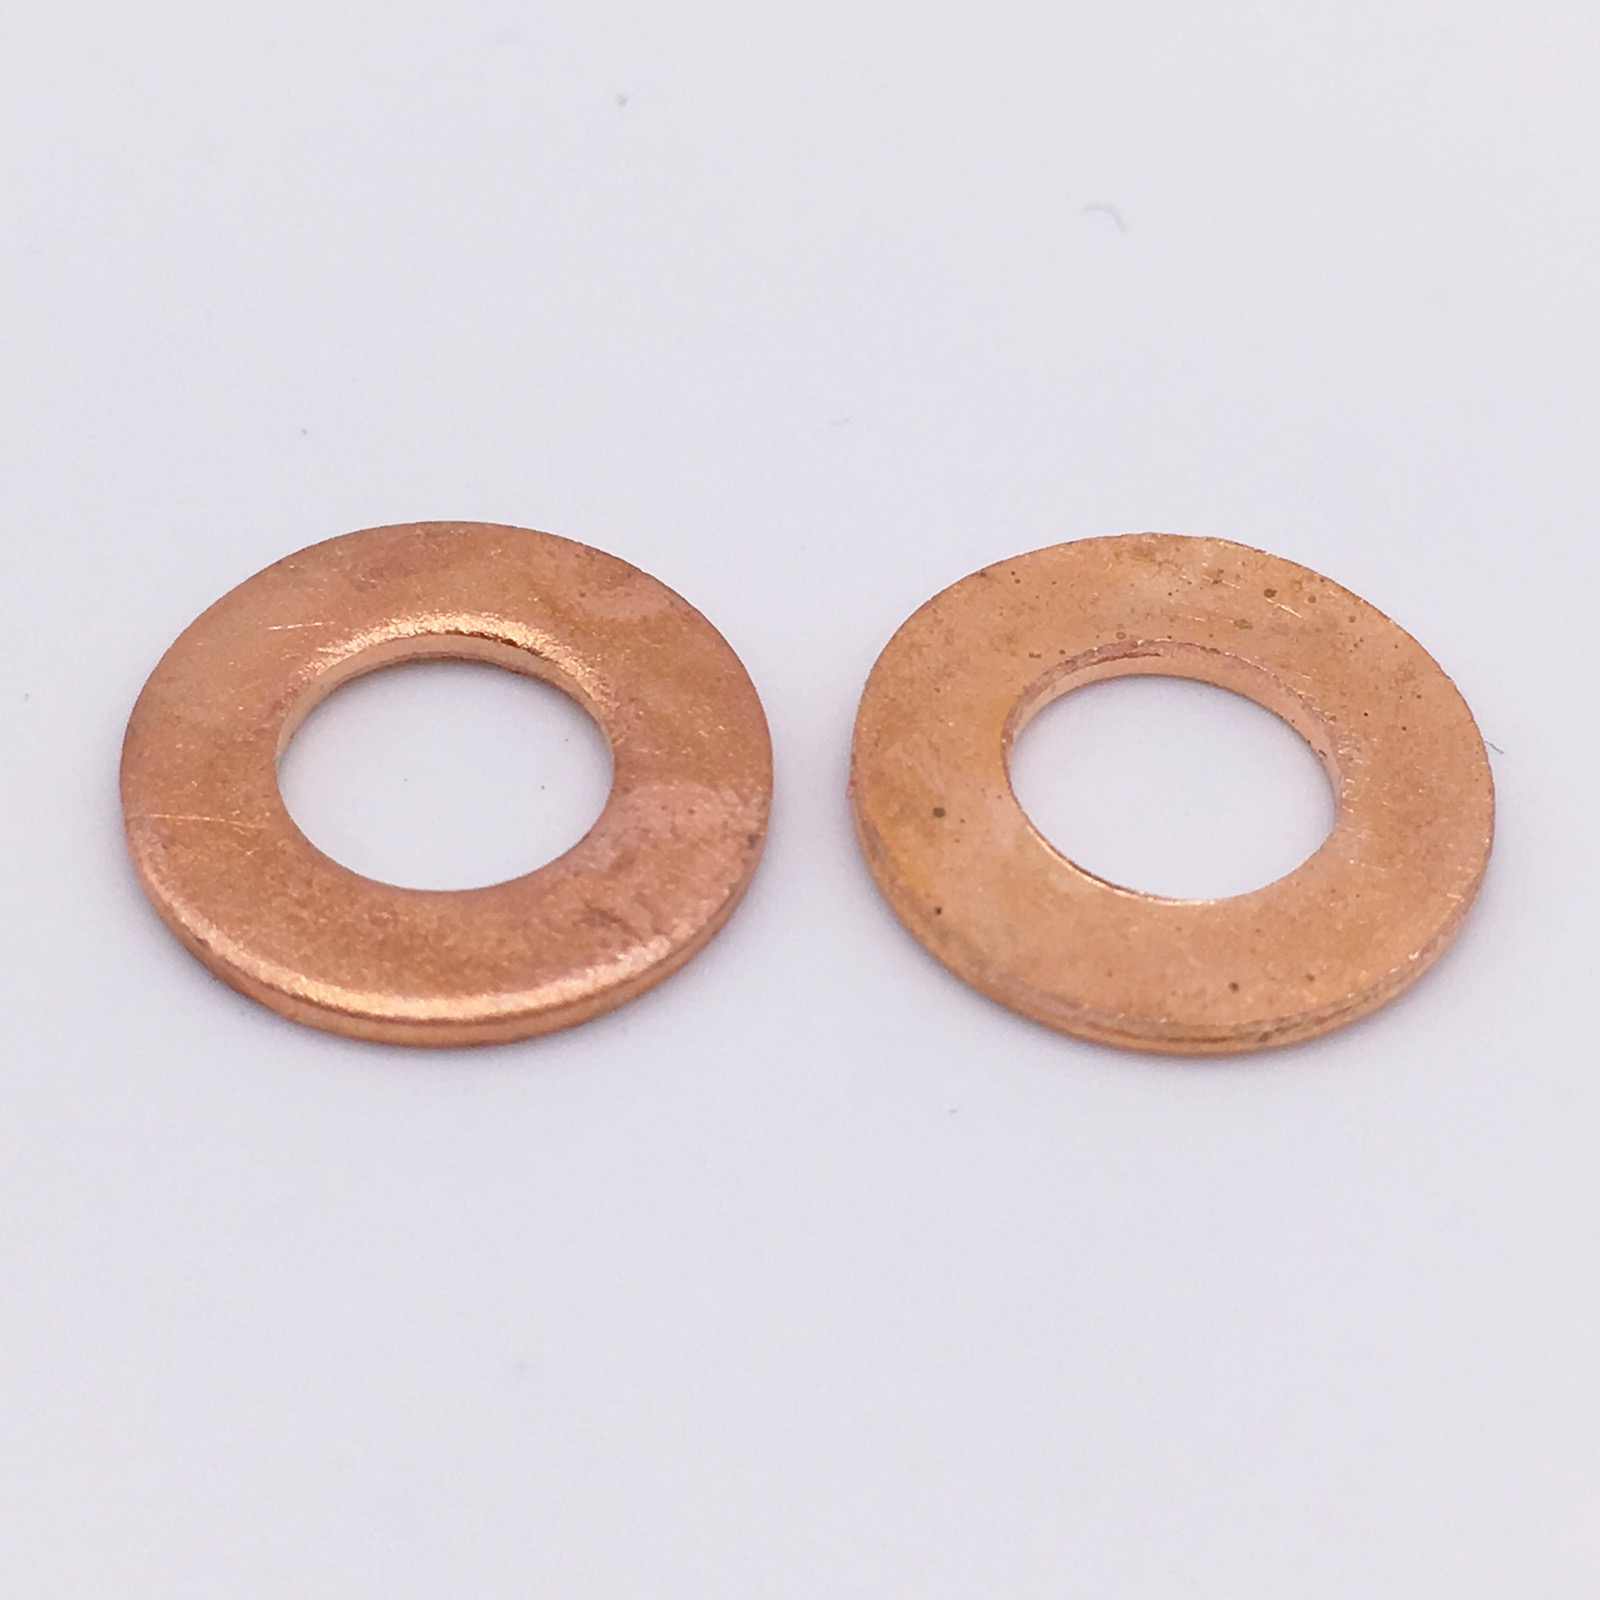 10 x 16 x 1 5 Red Copper Flat washer gasket spacer 500 pieces